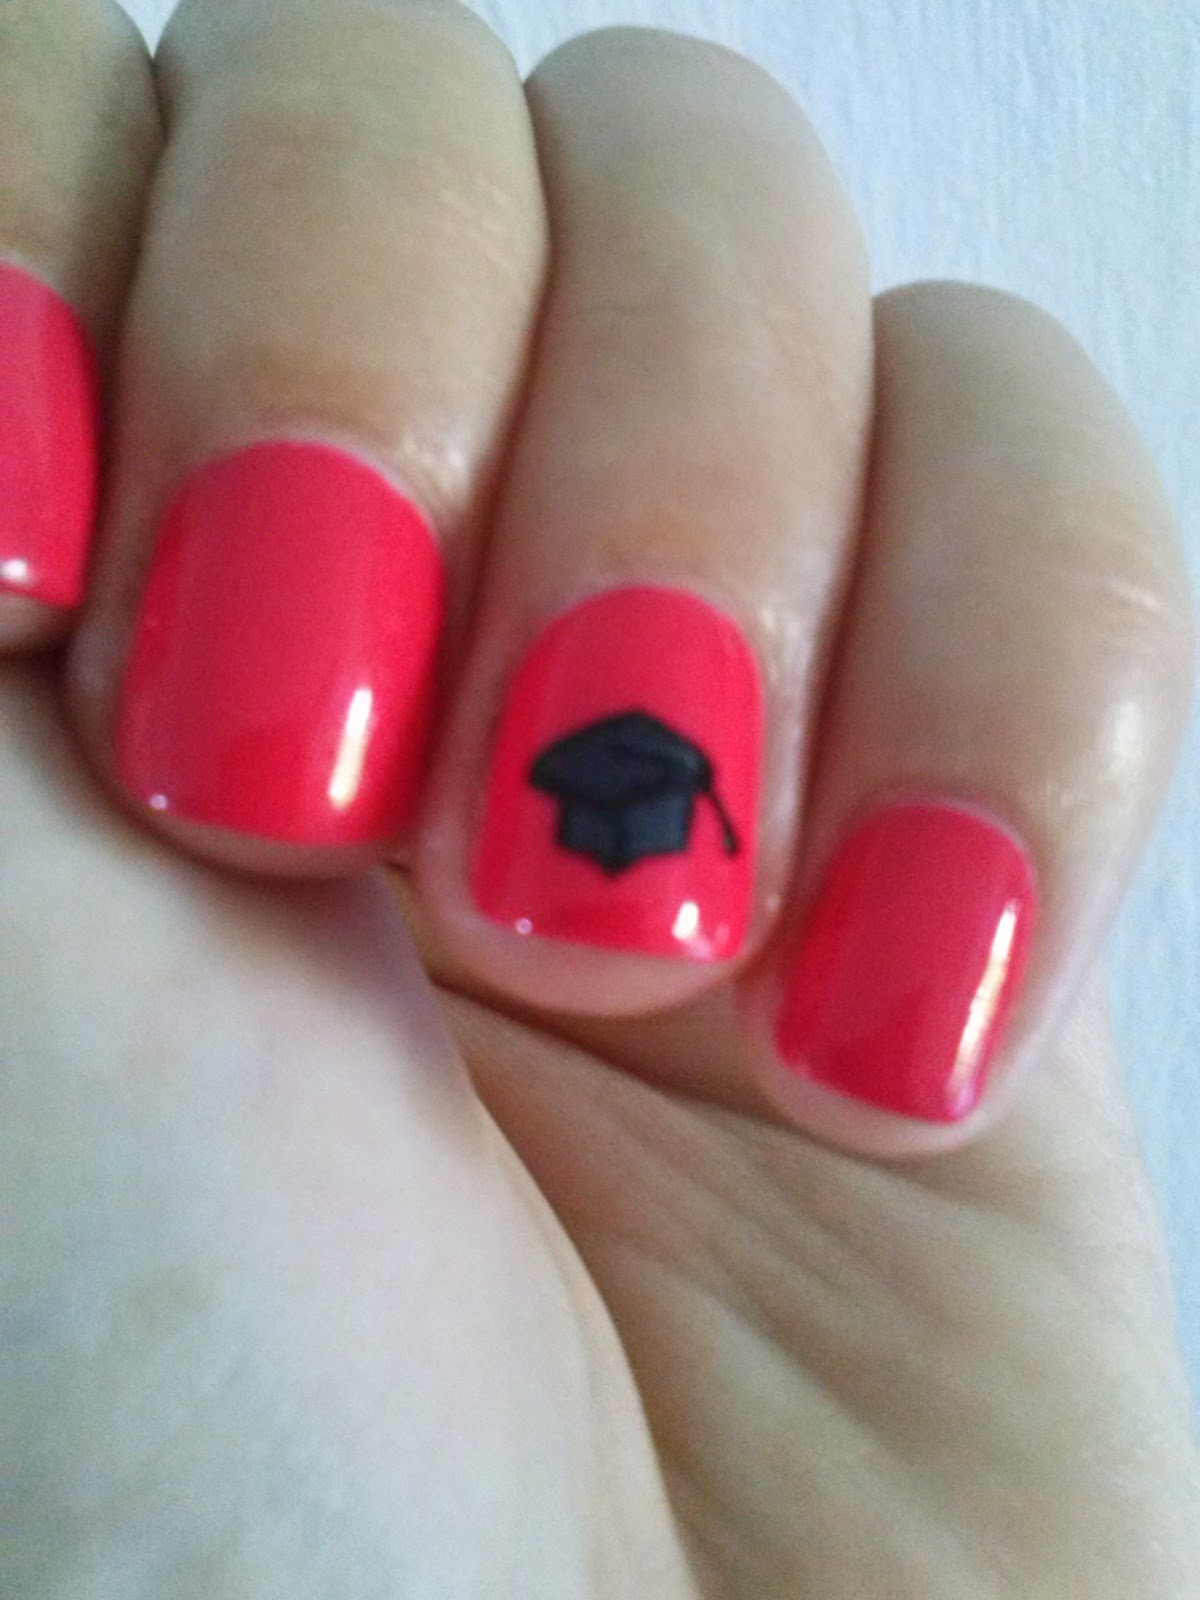 Favoloso CHIKI88 my passion for nails!: The nails of the week: Laurea! RN98